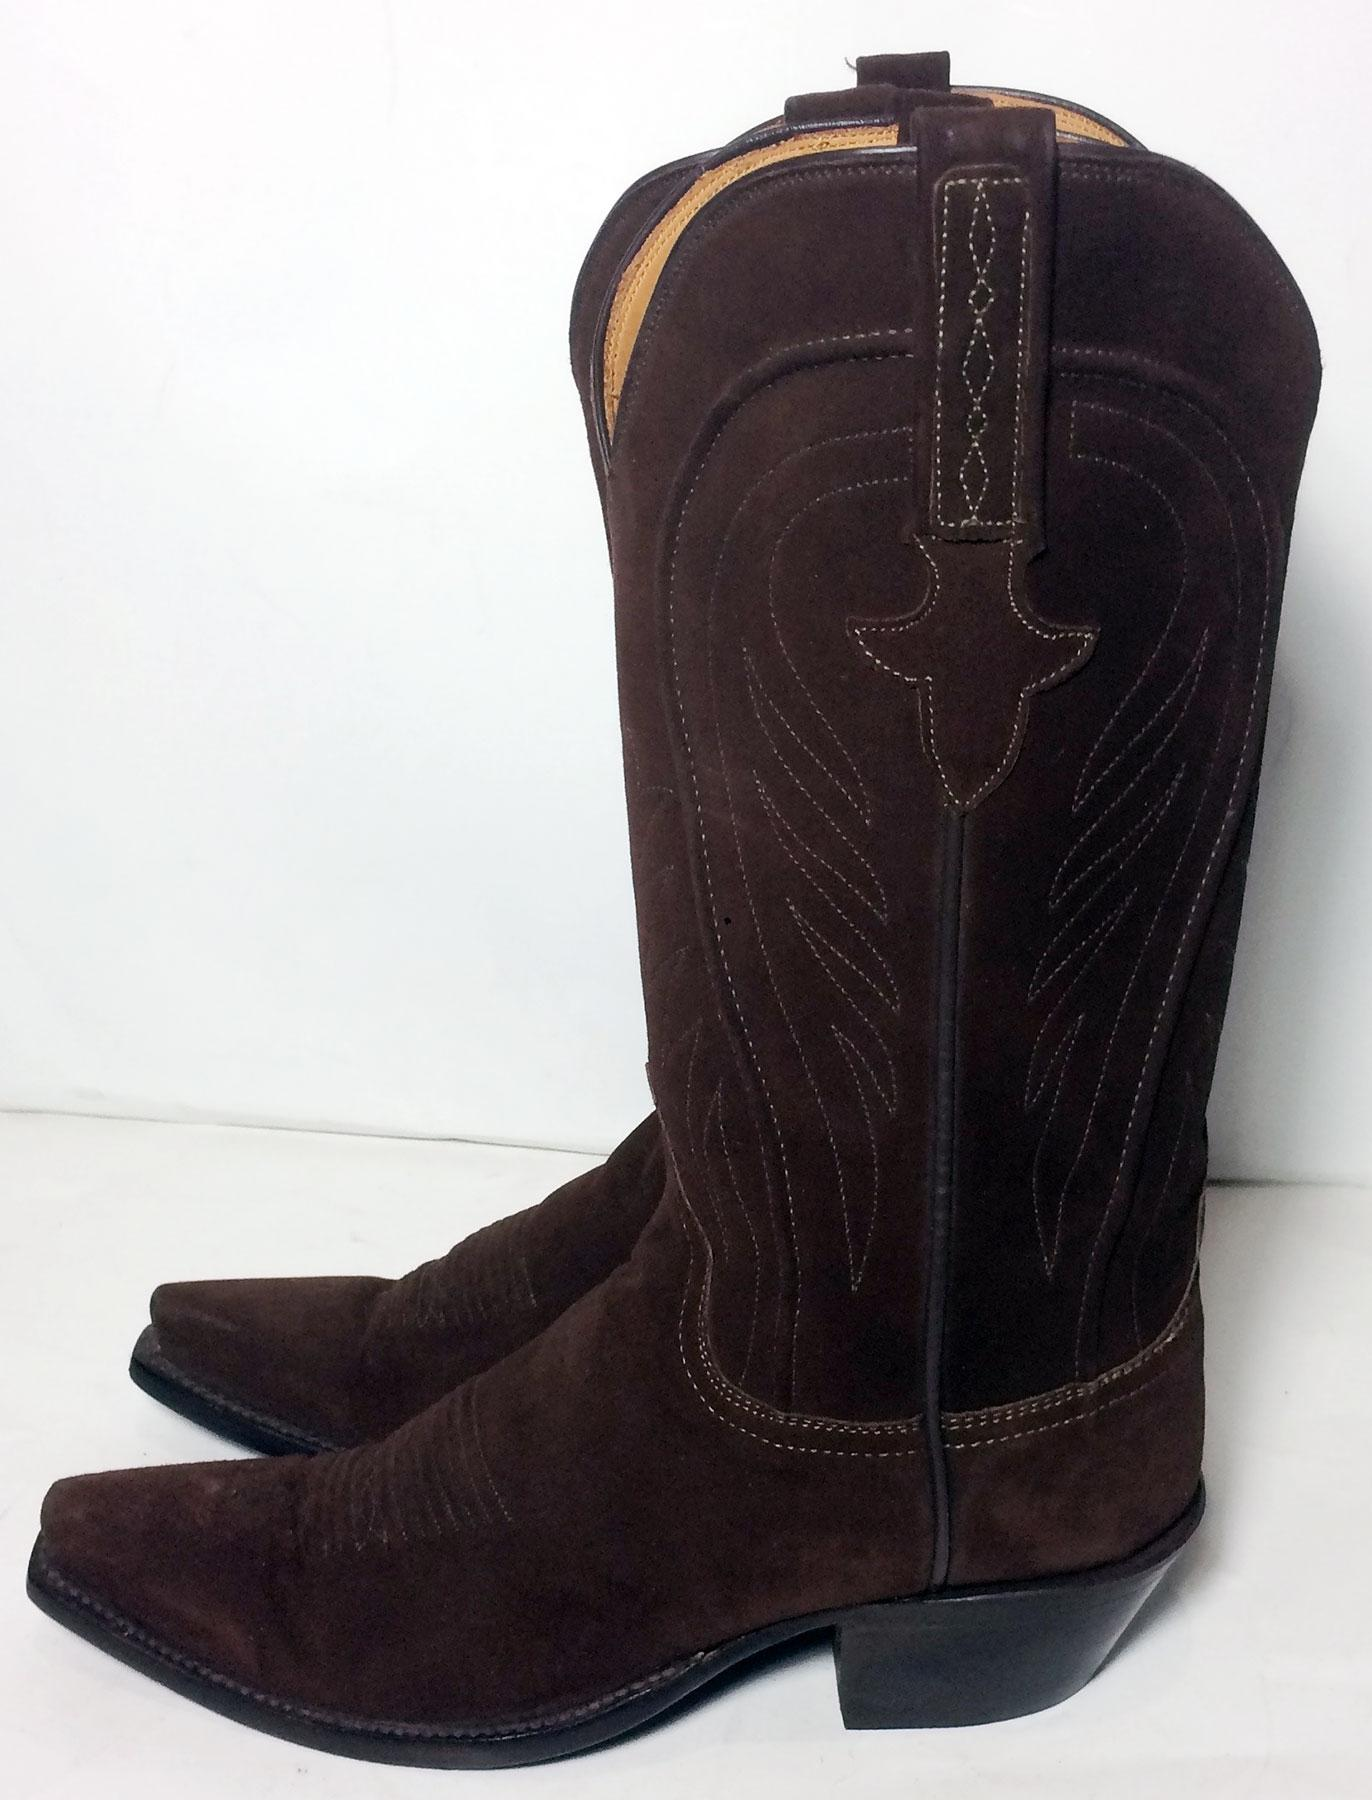 Lucchese Brown 1883 Suede Leather Western Cowgirl Cowboy Womens Boots Booties  Size US 65 Regular M B  Tradesy